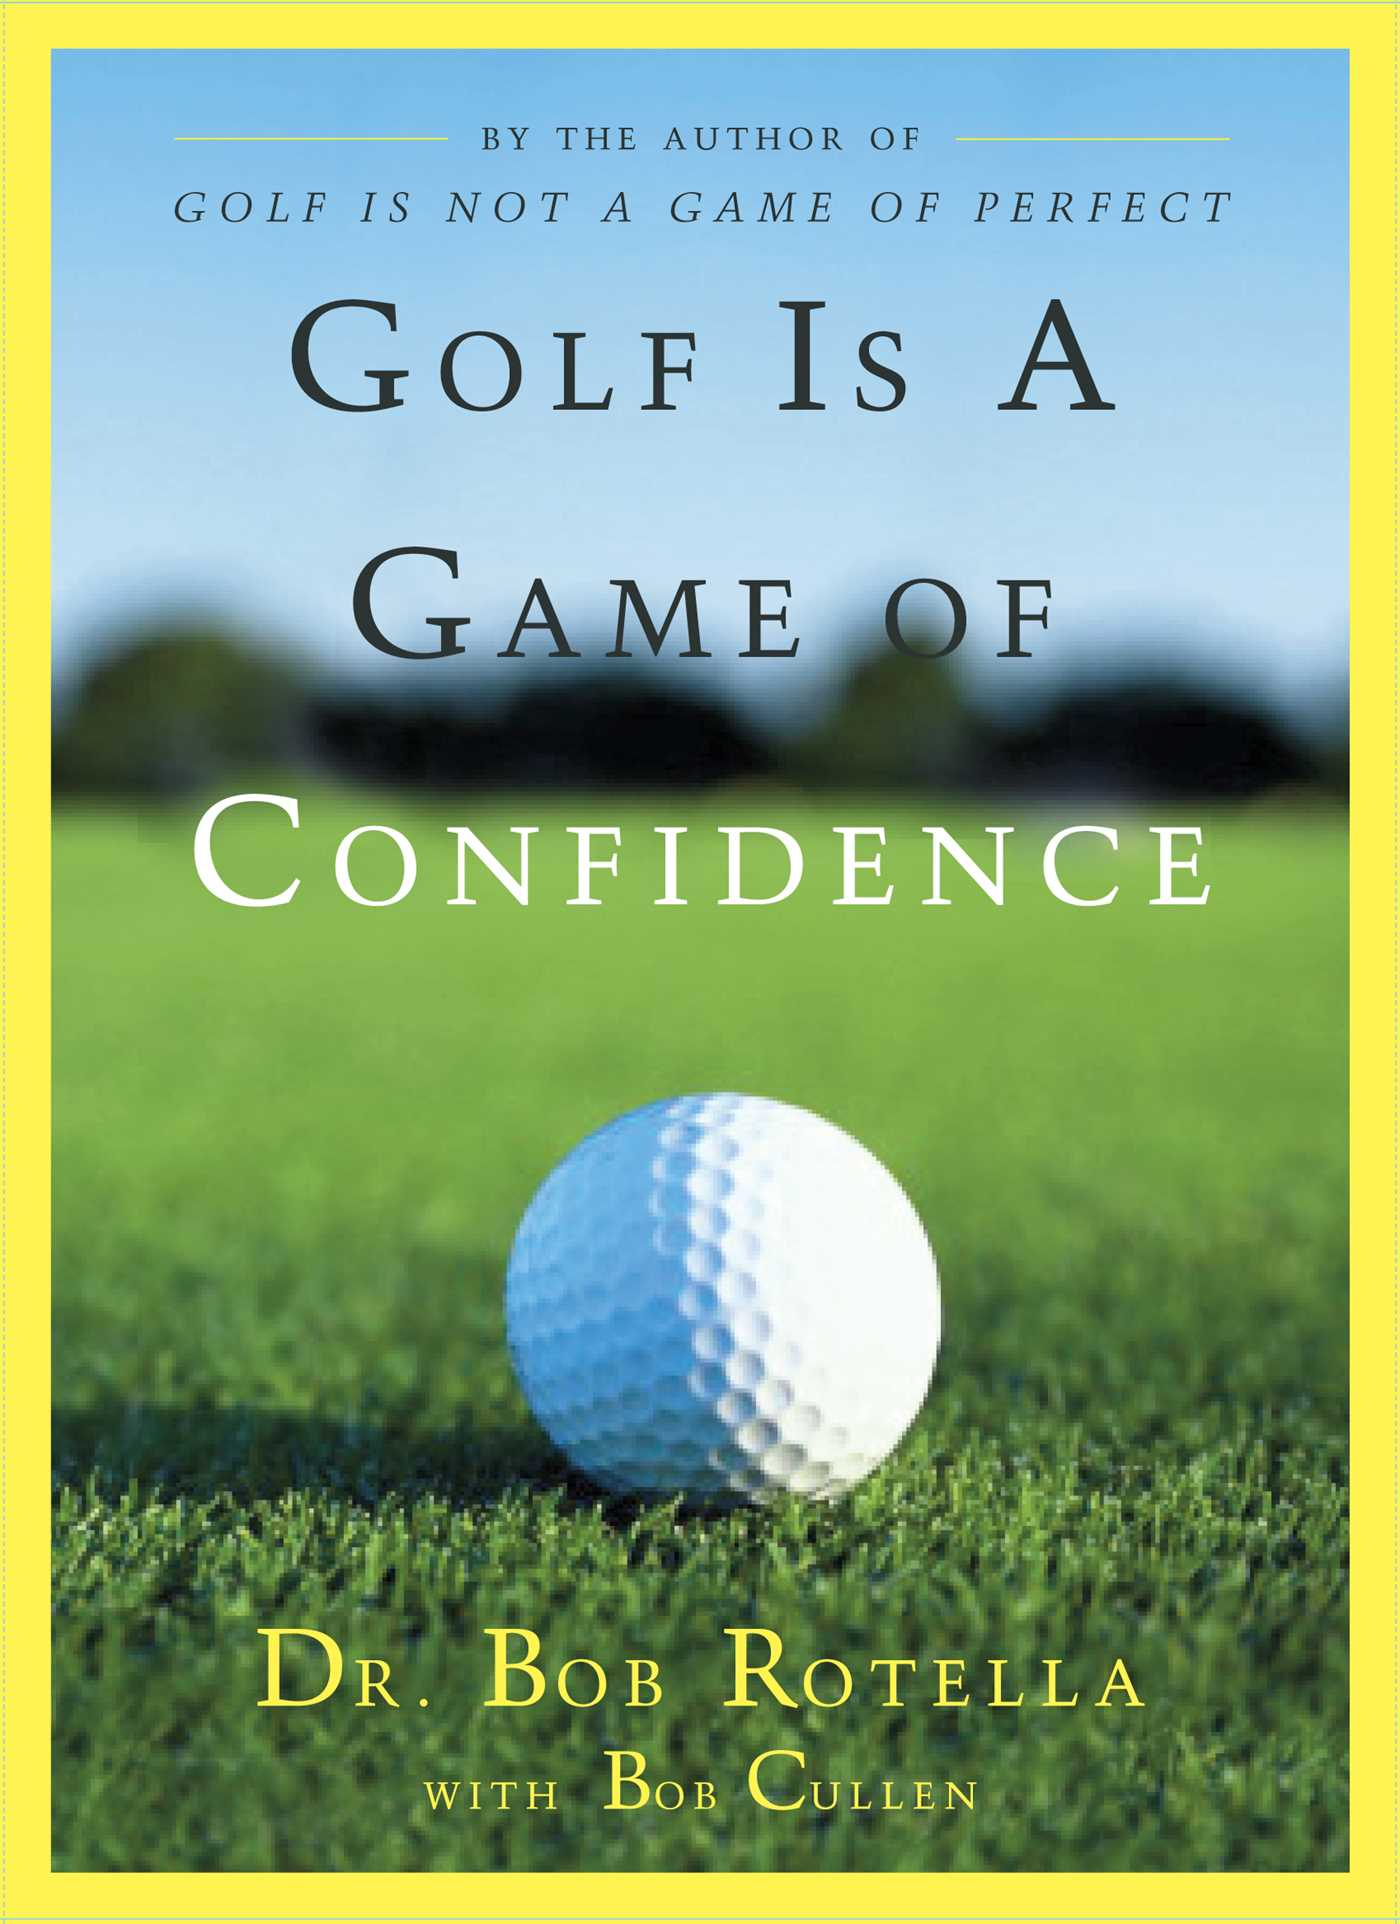 Golf is a game of confidence 9781439137109 hr